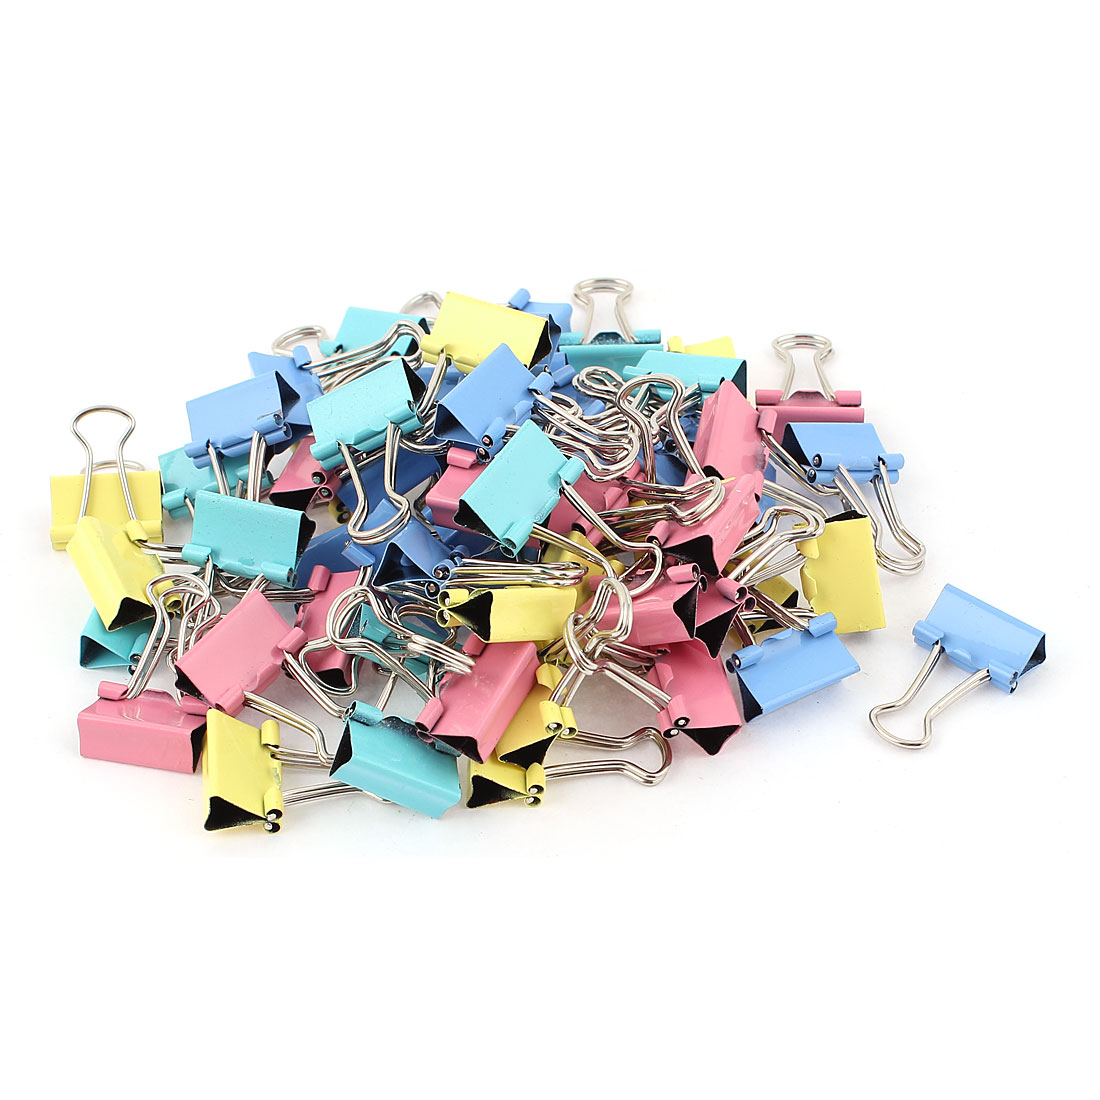 School Office Paper Document Organize Stationery 15mm Metal Bookbinding Clamp Binder Clips 60pcs